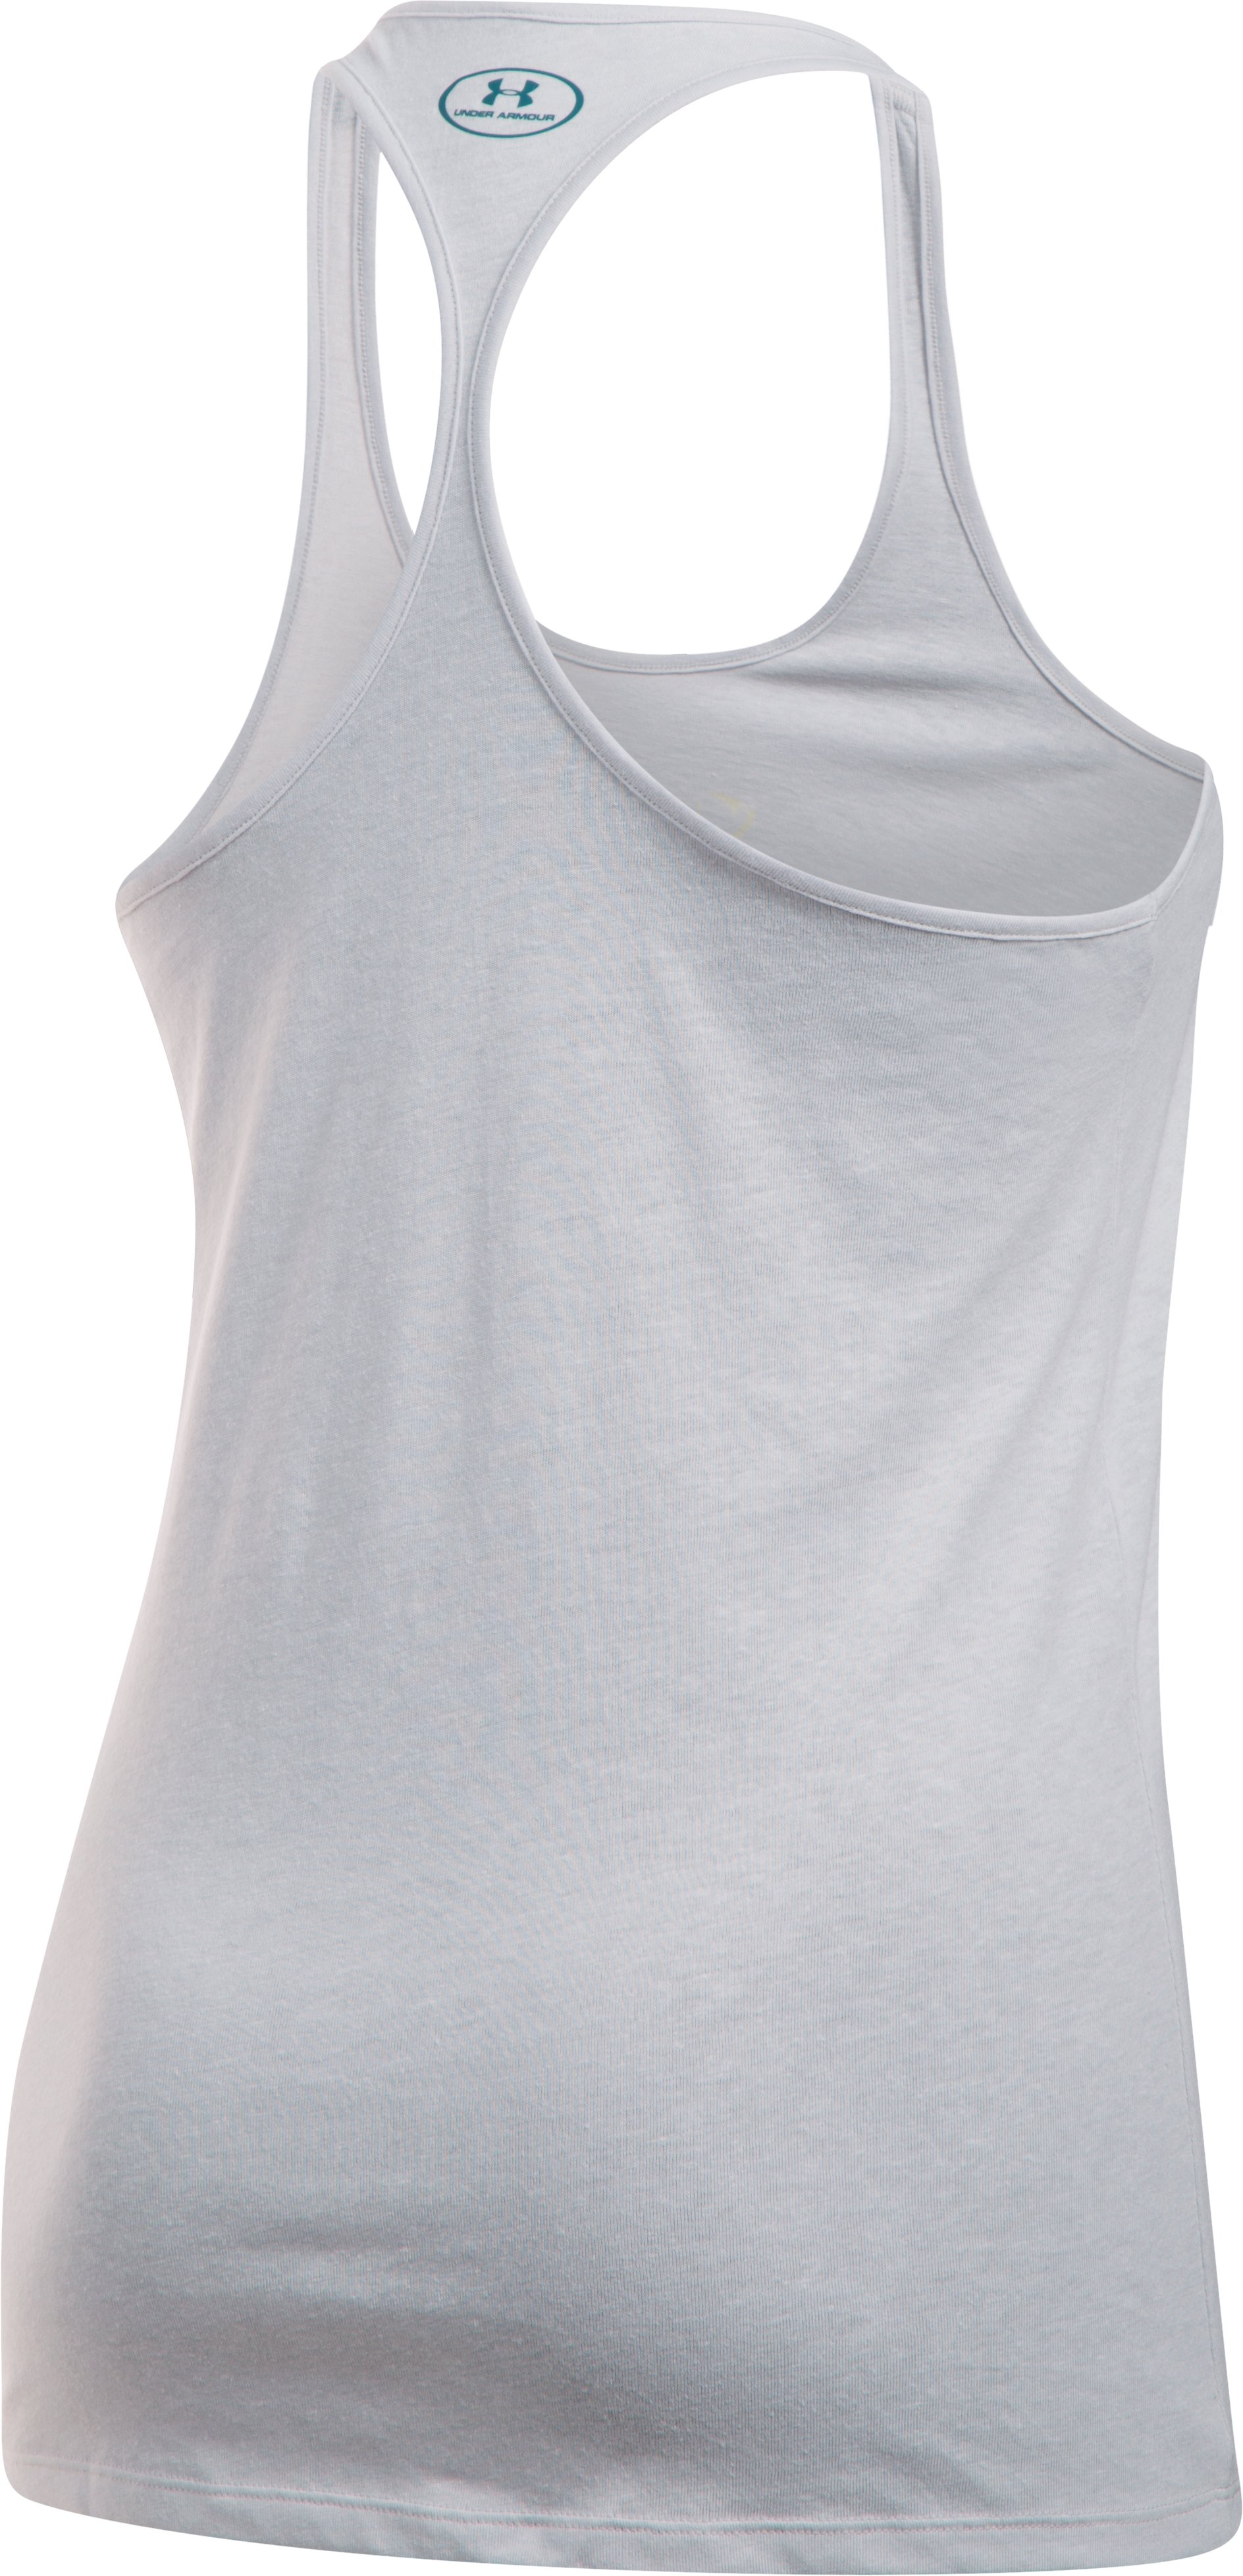 Women's UA Graphic Tank, GLACIER GRAY, undefined